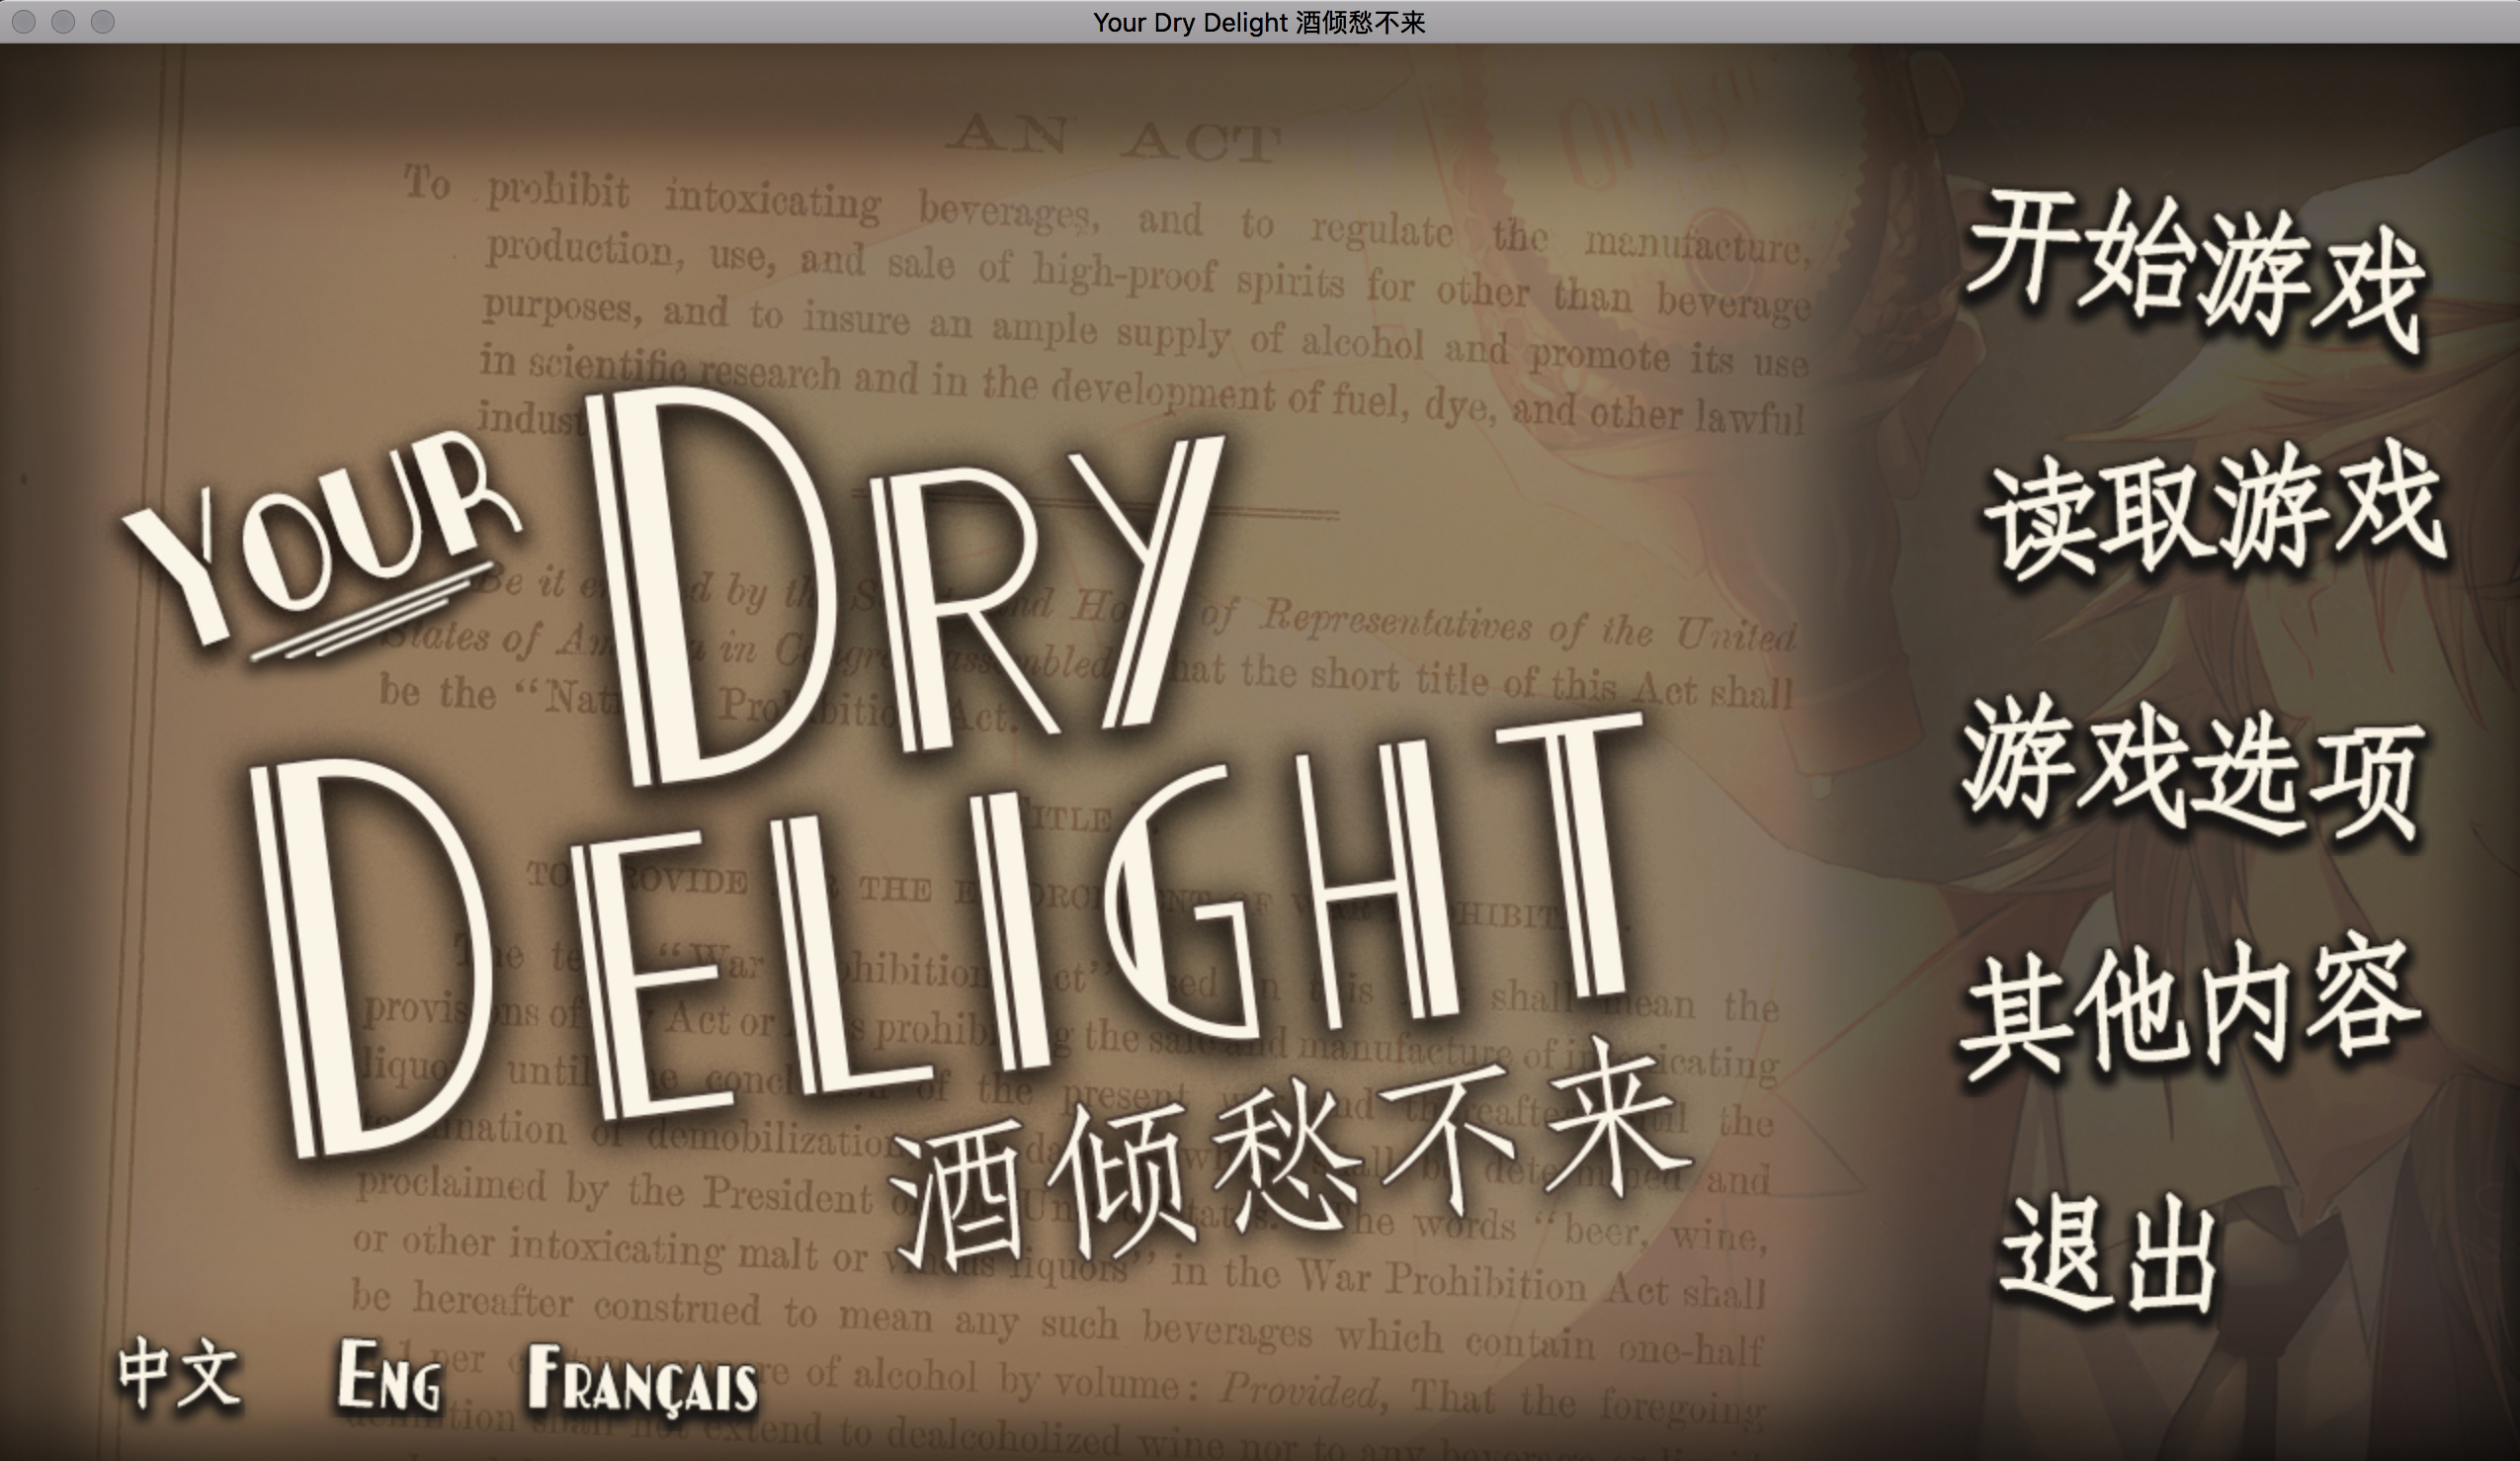 English main menu of Your Dry Delight